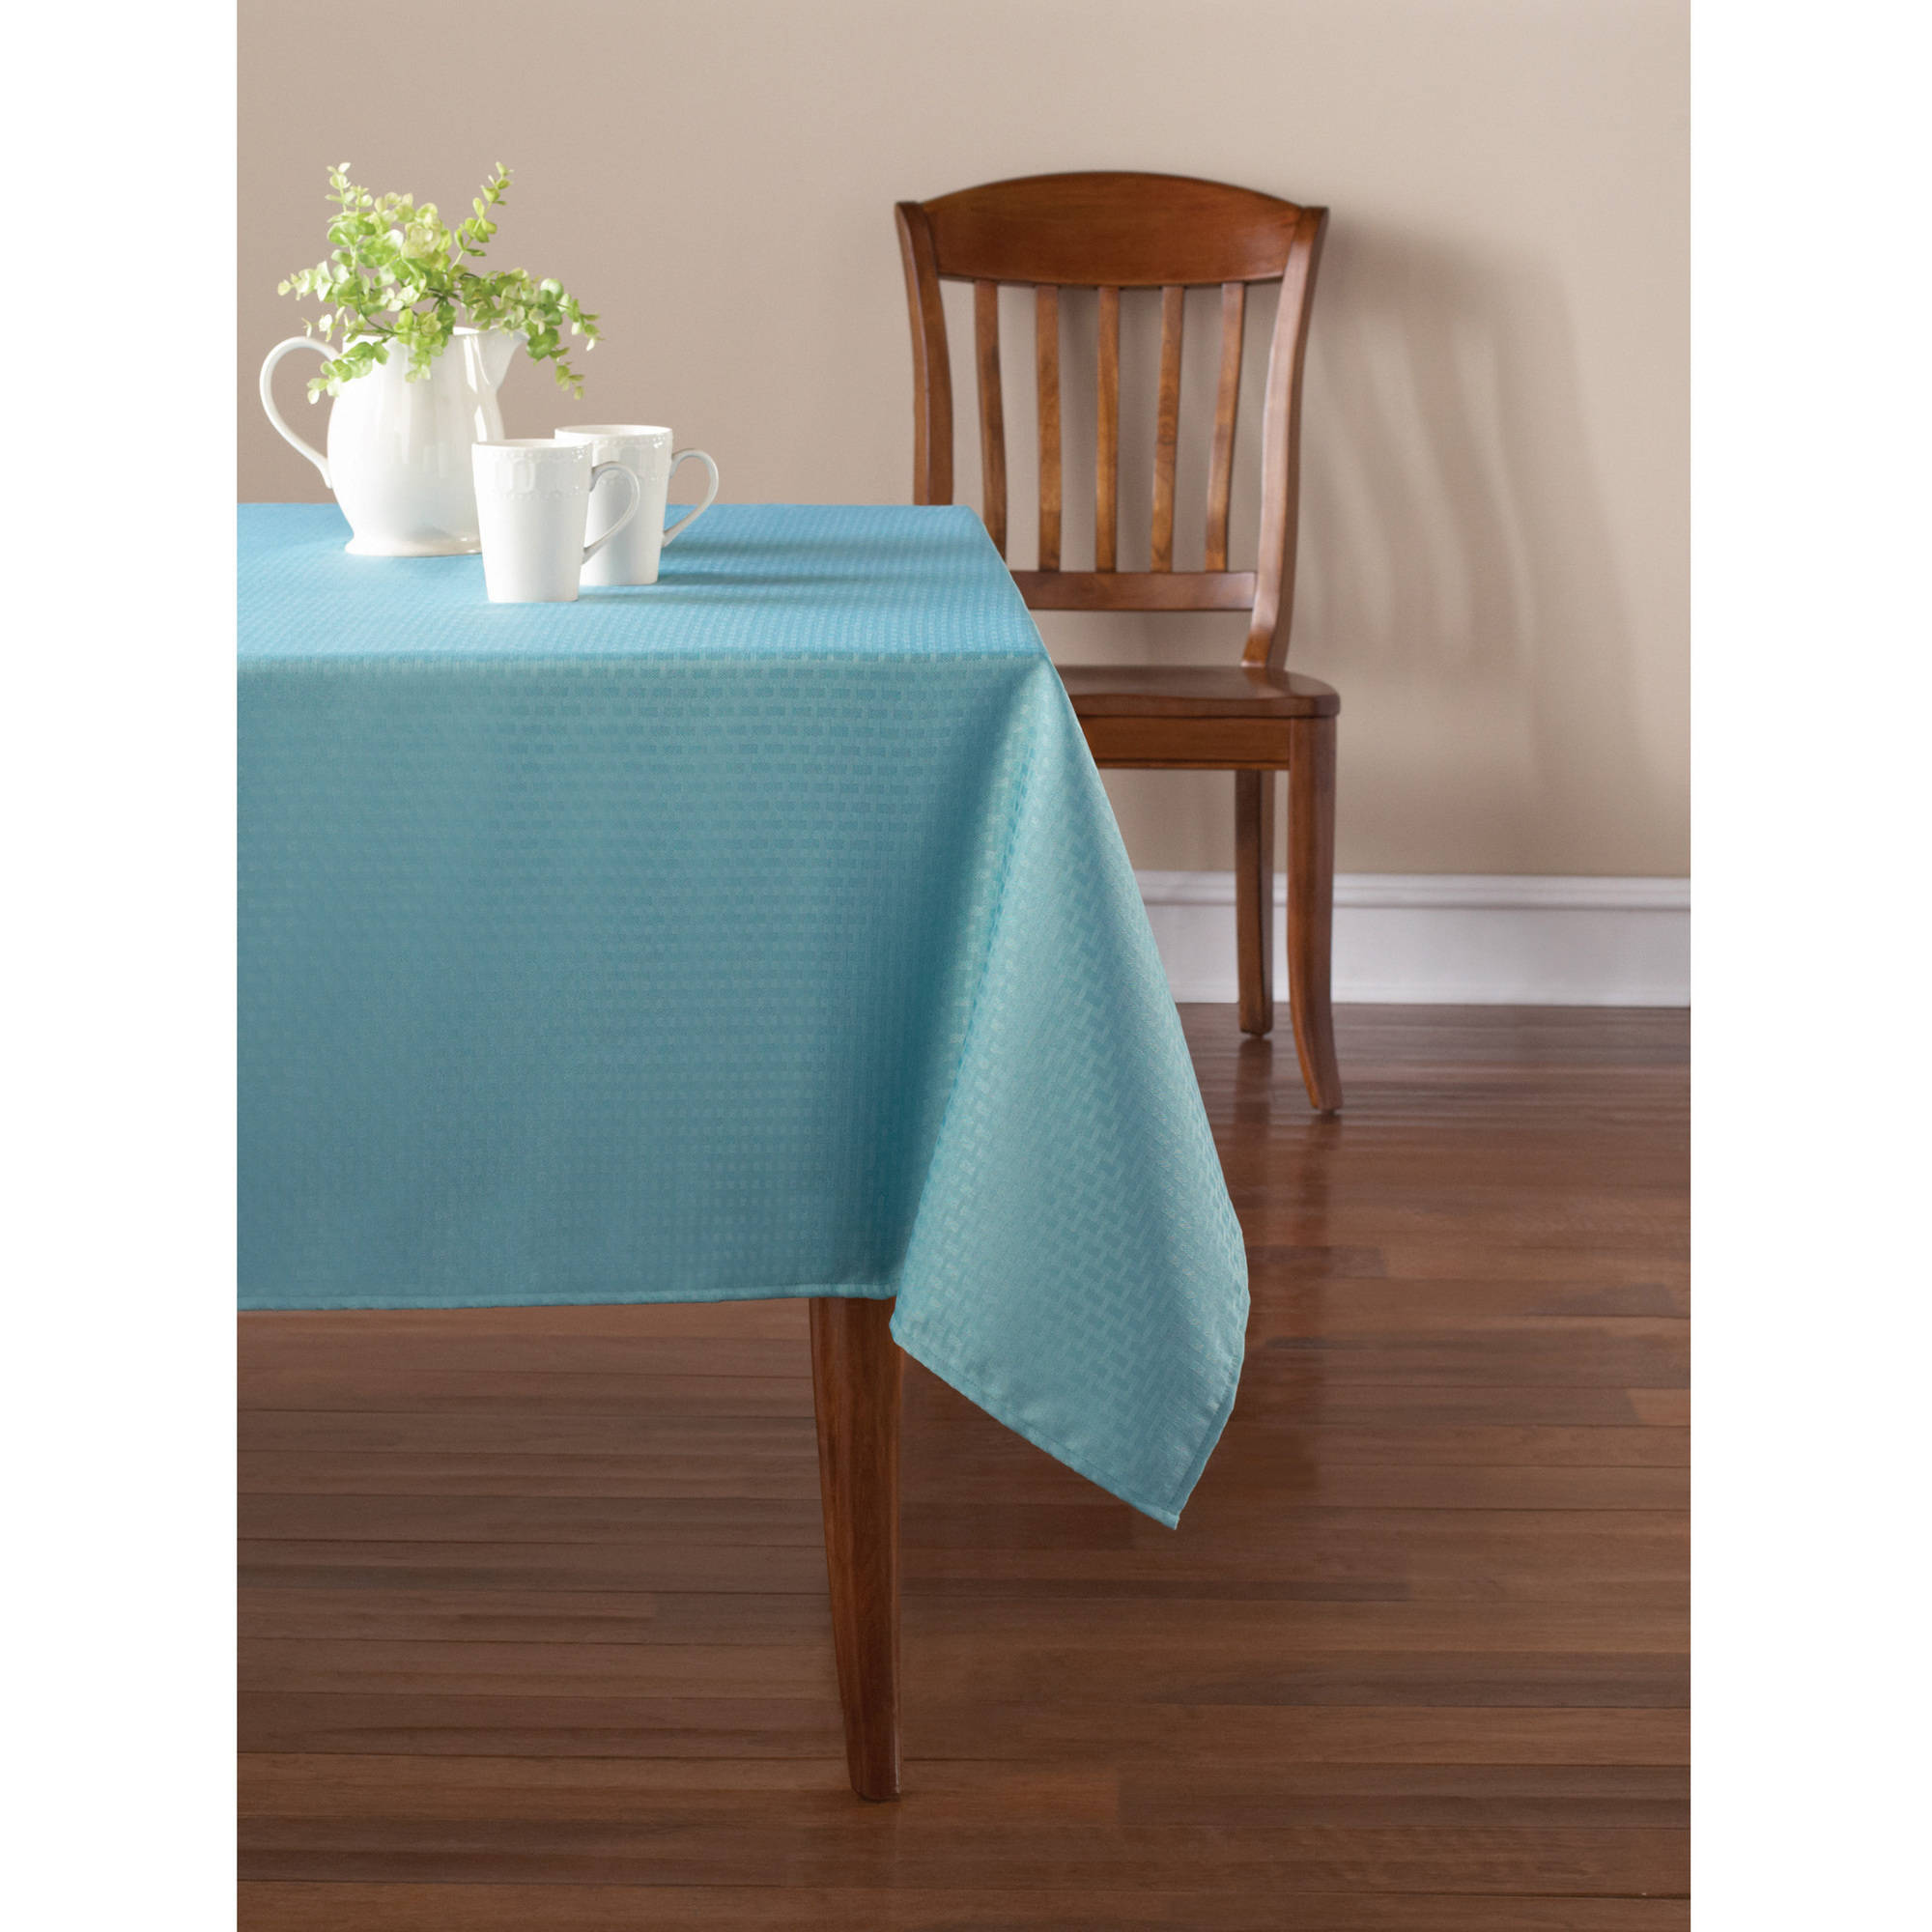 Mainstay Blue Topaz Tablecloth